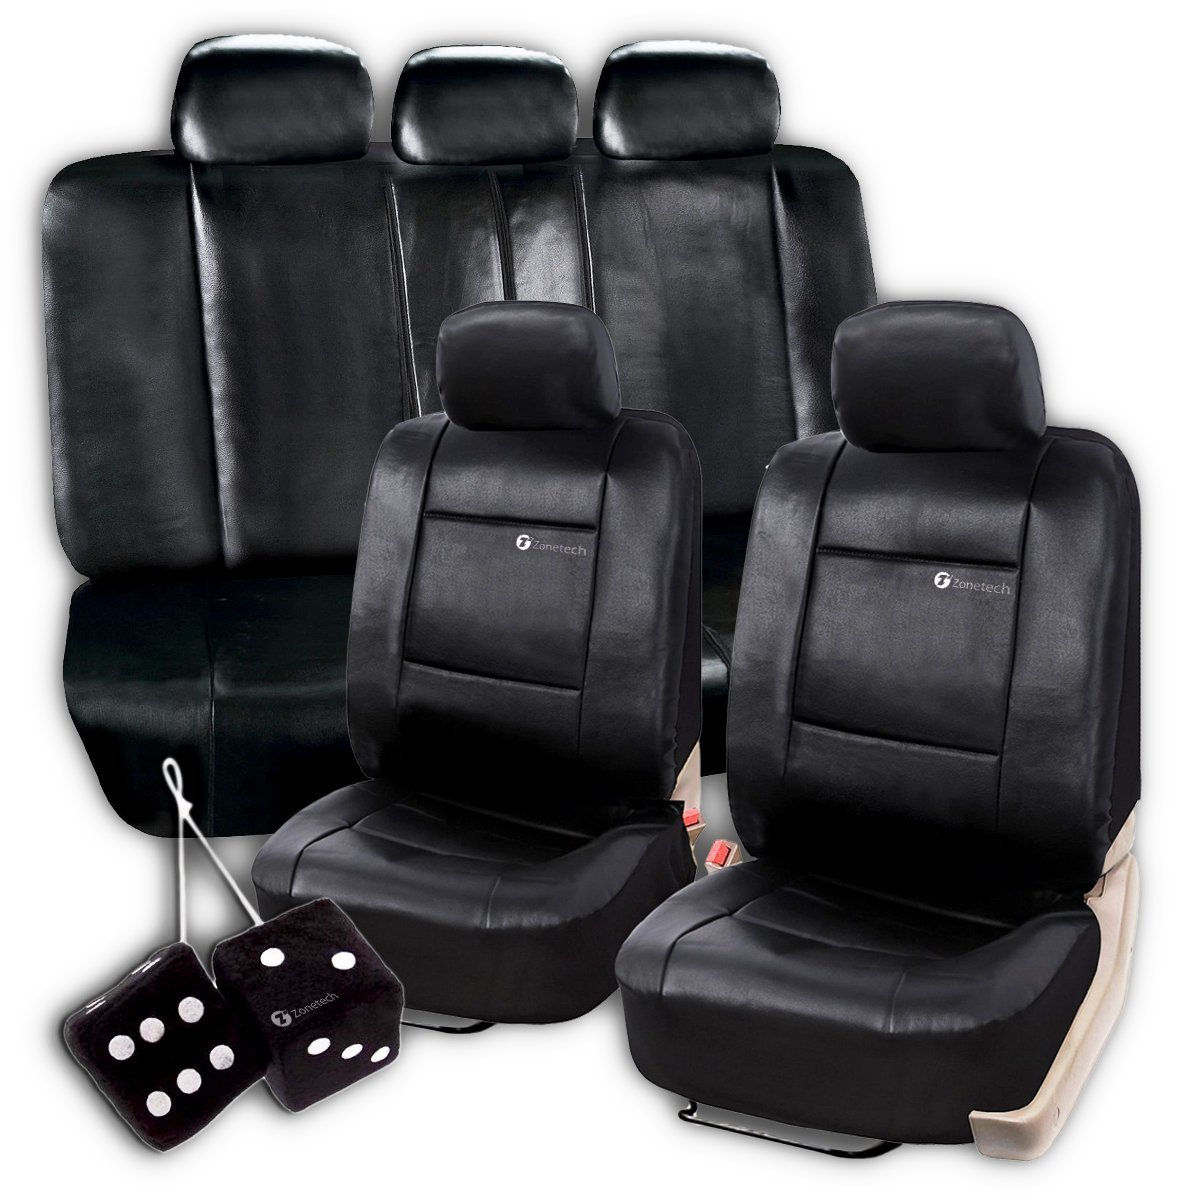 Zone Tech Universal Fit Premium Quality Luxury Interior Décor Pu Leather Full Set of Solid Black Seat Covers+ Pair of Classic Black Plush Hanging Fuzzy Dice Set